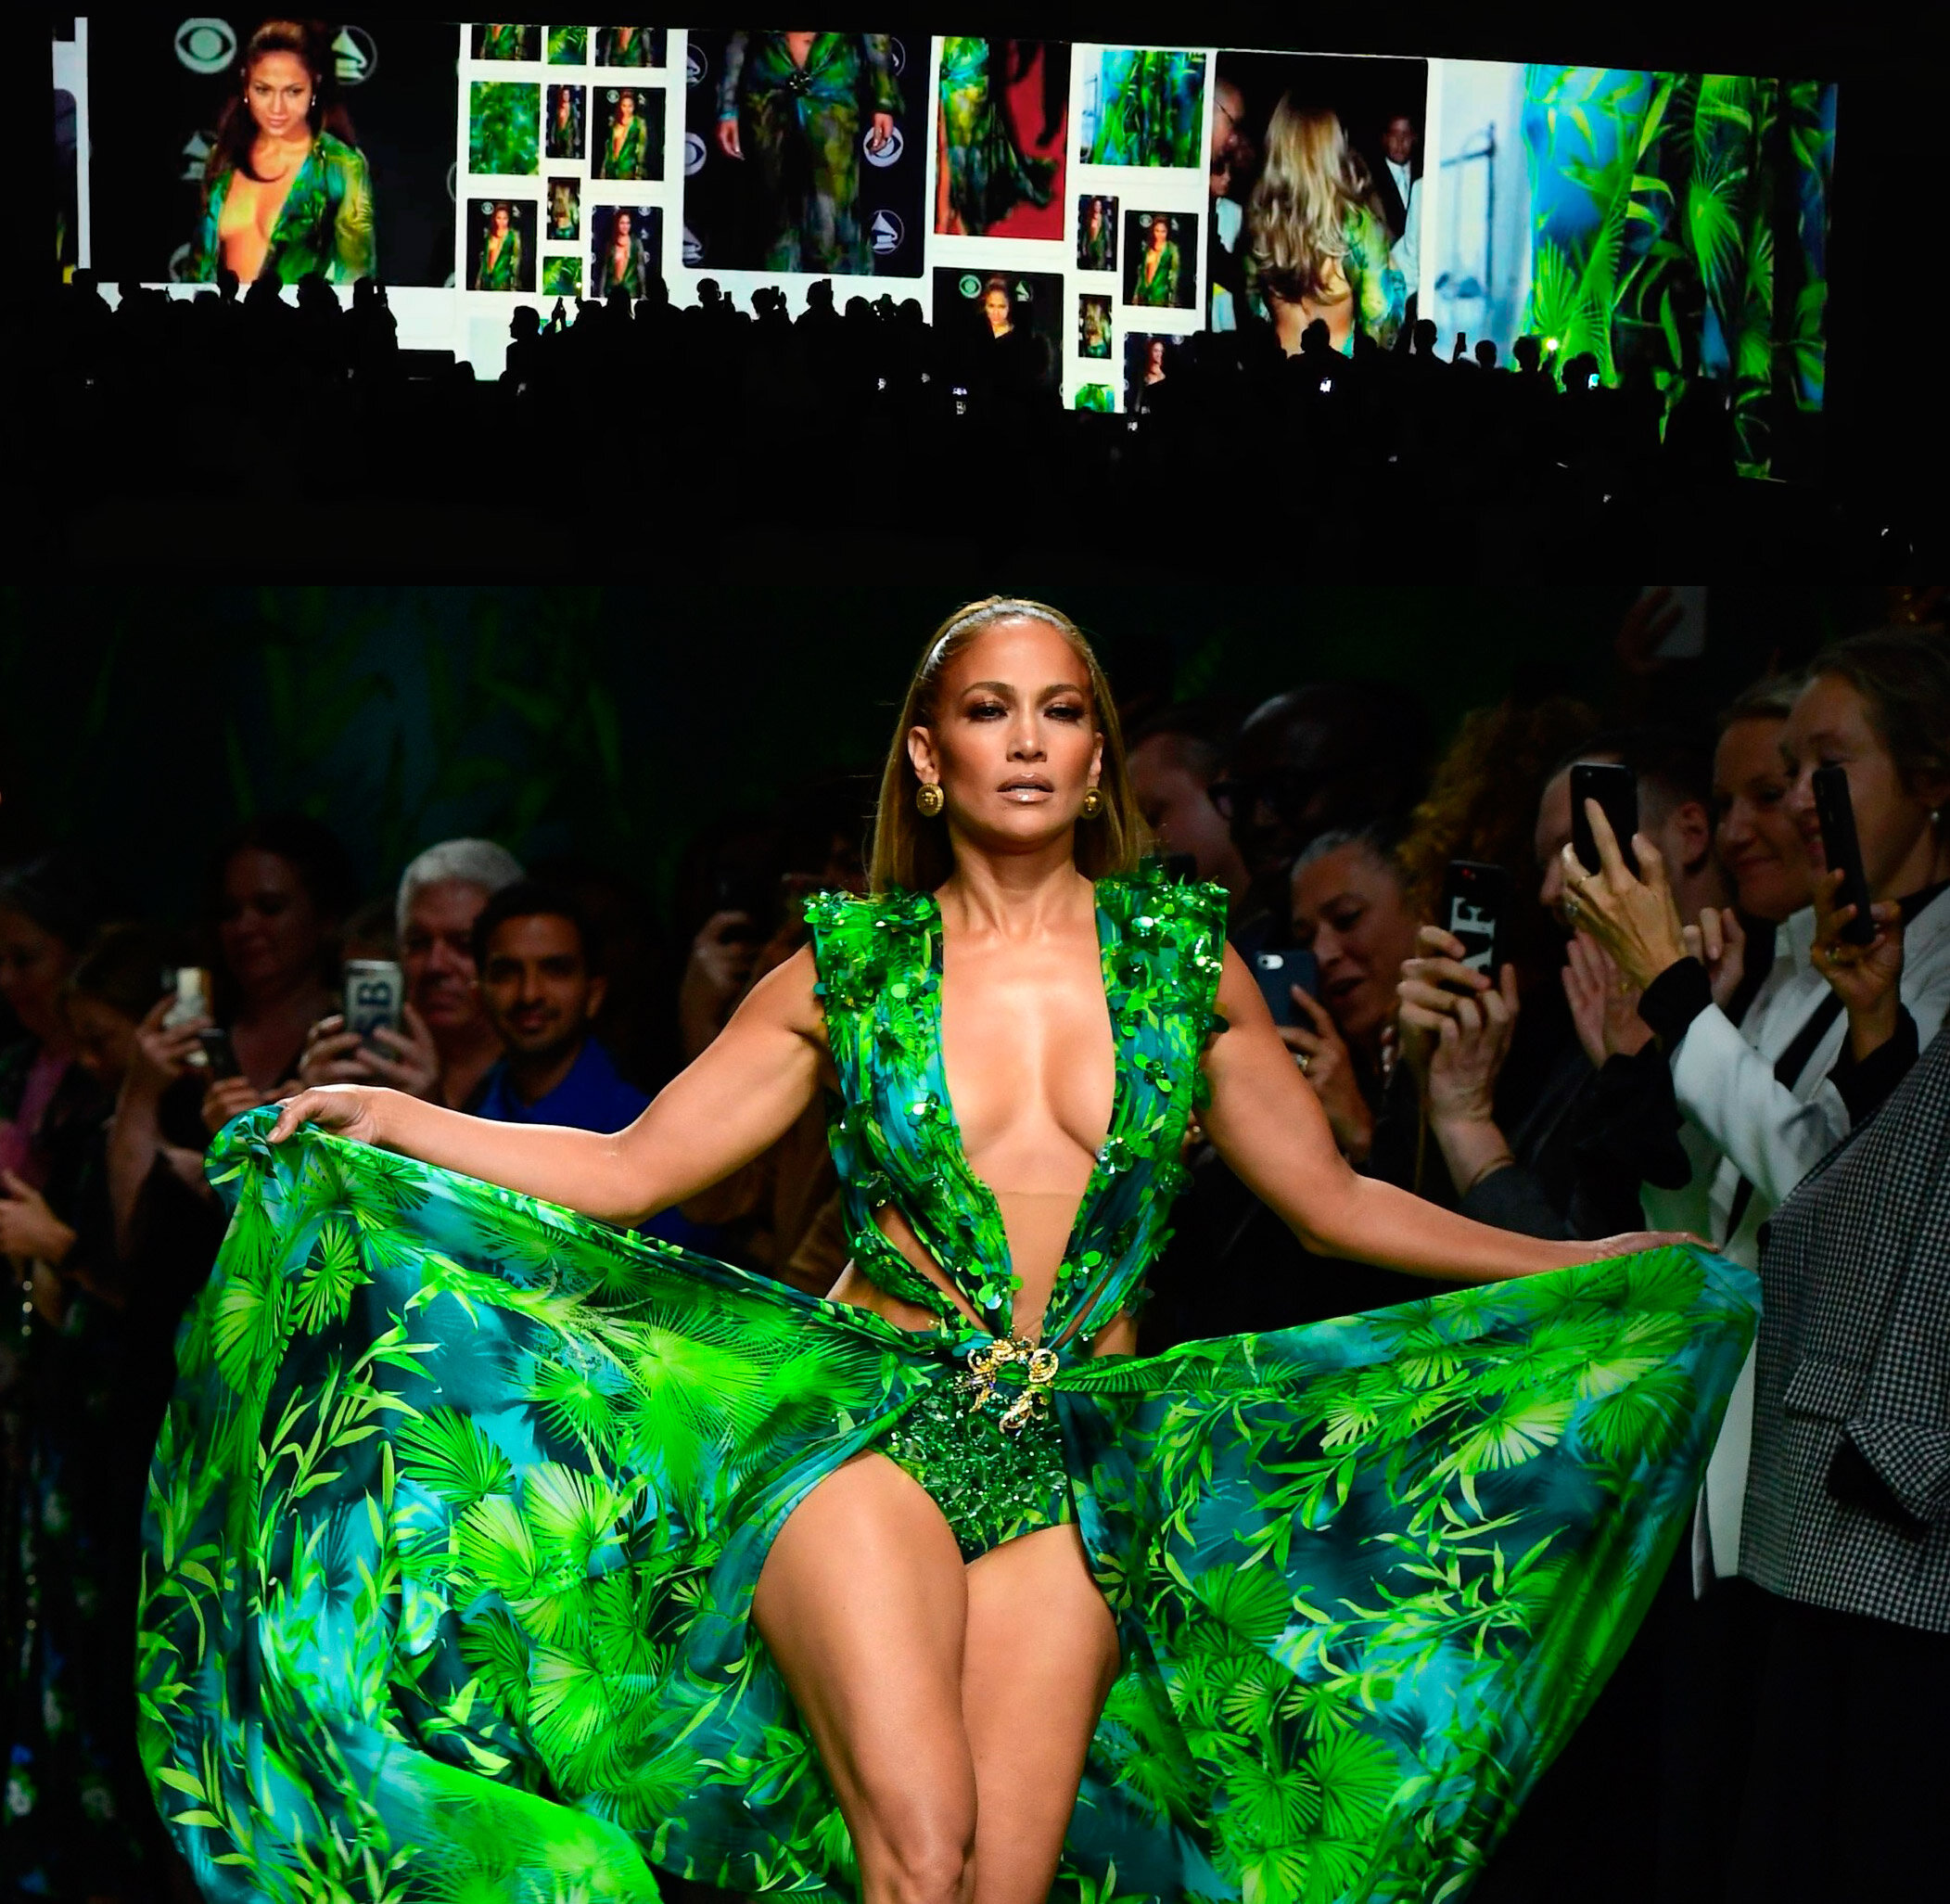 Versace Spring-Summer 2020 show, September 20, 2019, in Milan. Above, a panoramic screen with images of the jungle dress, worn by Jennifer Lopez, in 2000 and below, the American singer on the catwalk with the revisited version of the Versace silhouette